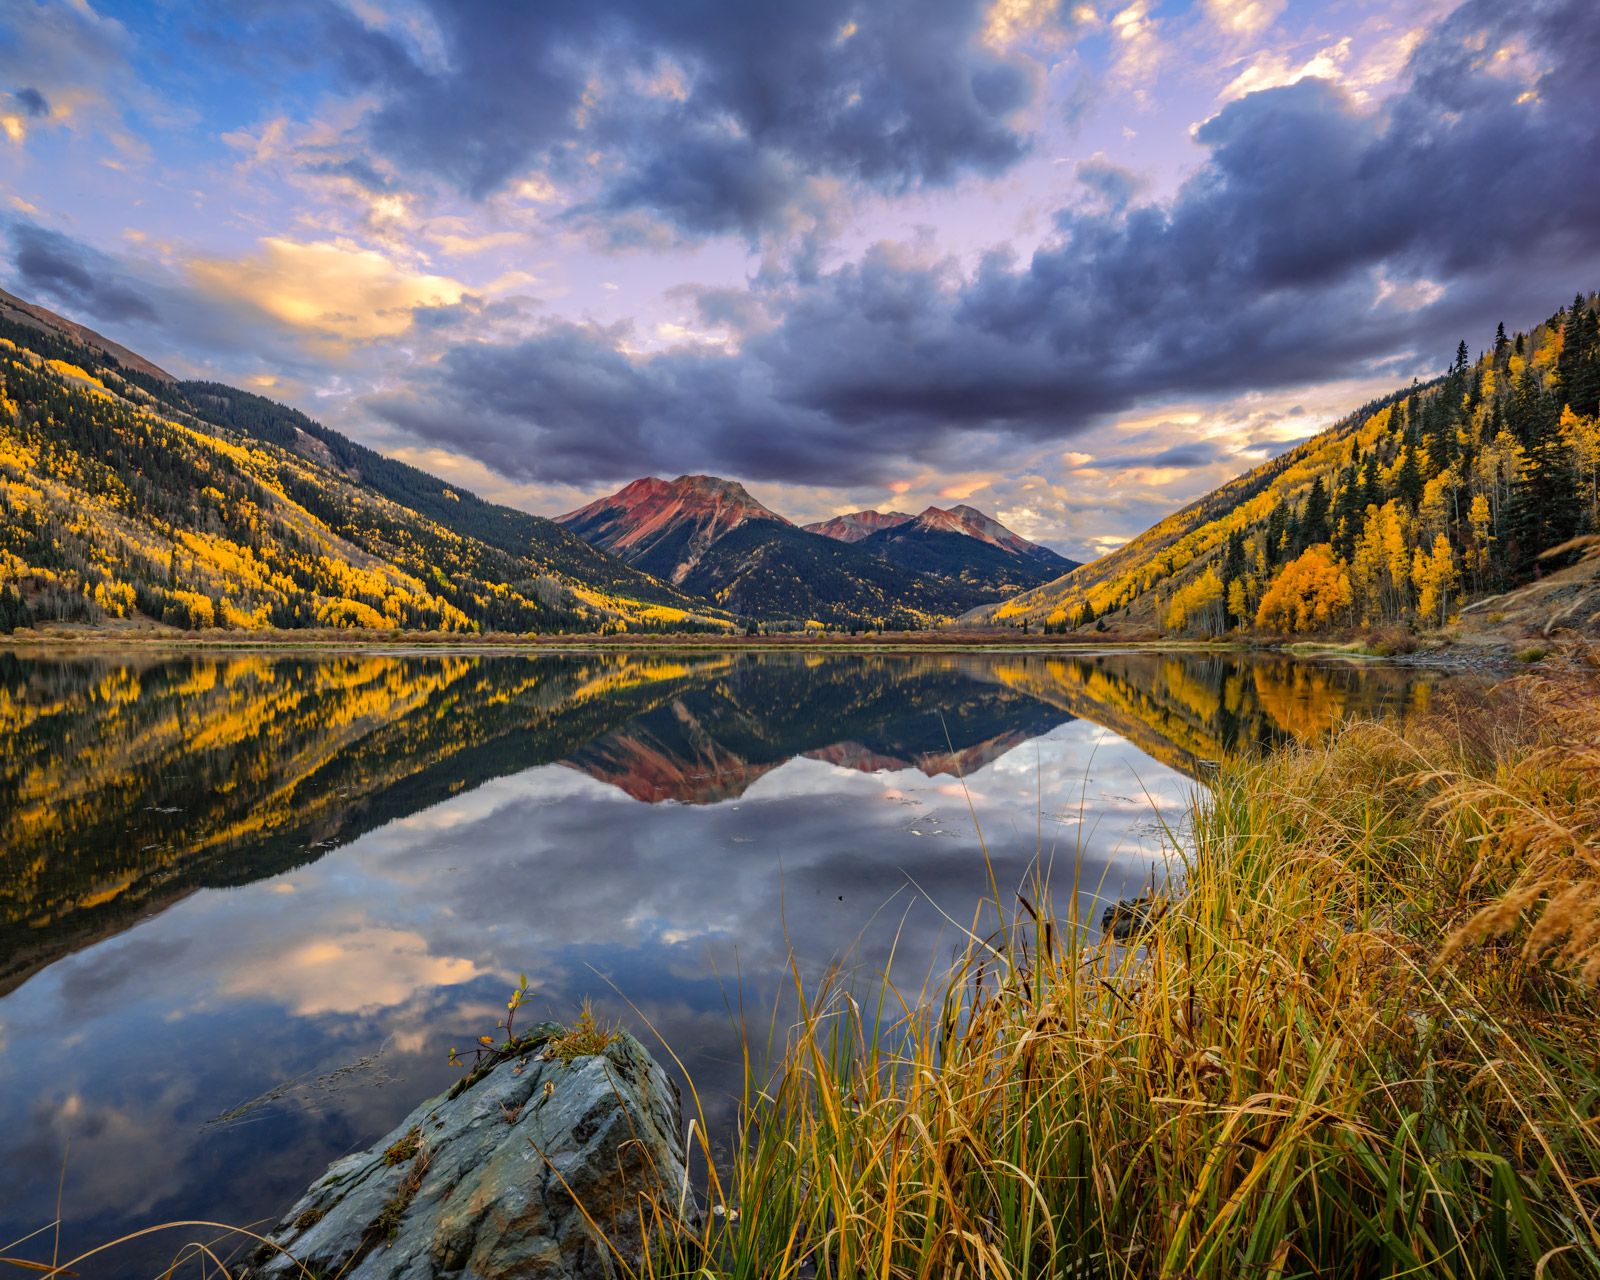 A Limited Edition, Fine Art photograph of Red Mountain and Fall Aspen trees reflecting perfectly in Crystal Lake at sunrise in...